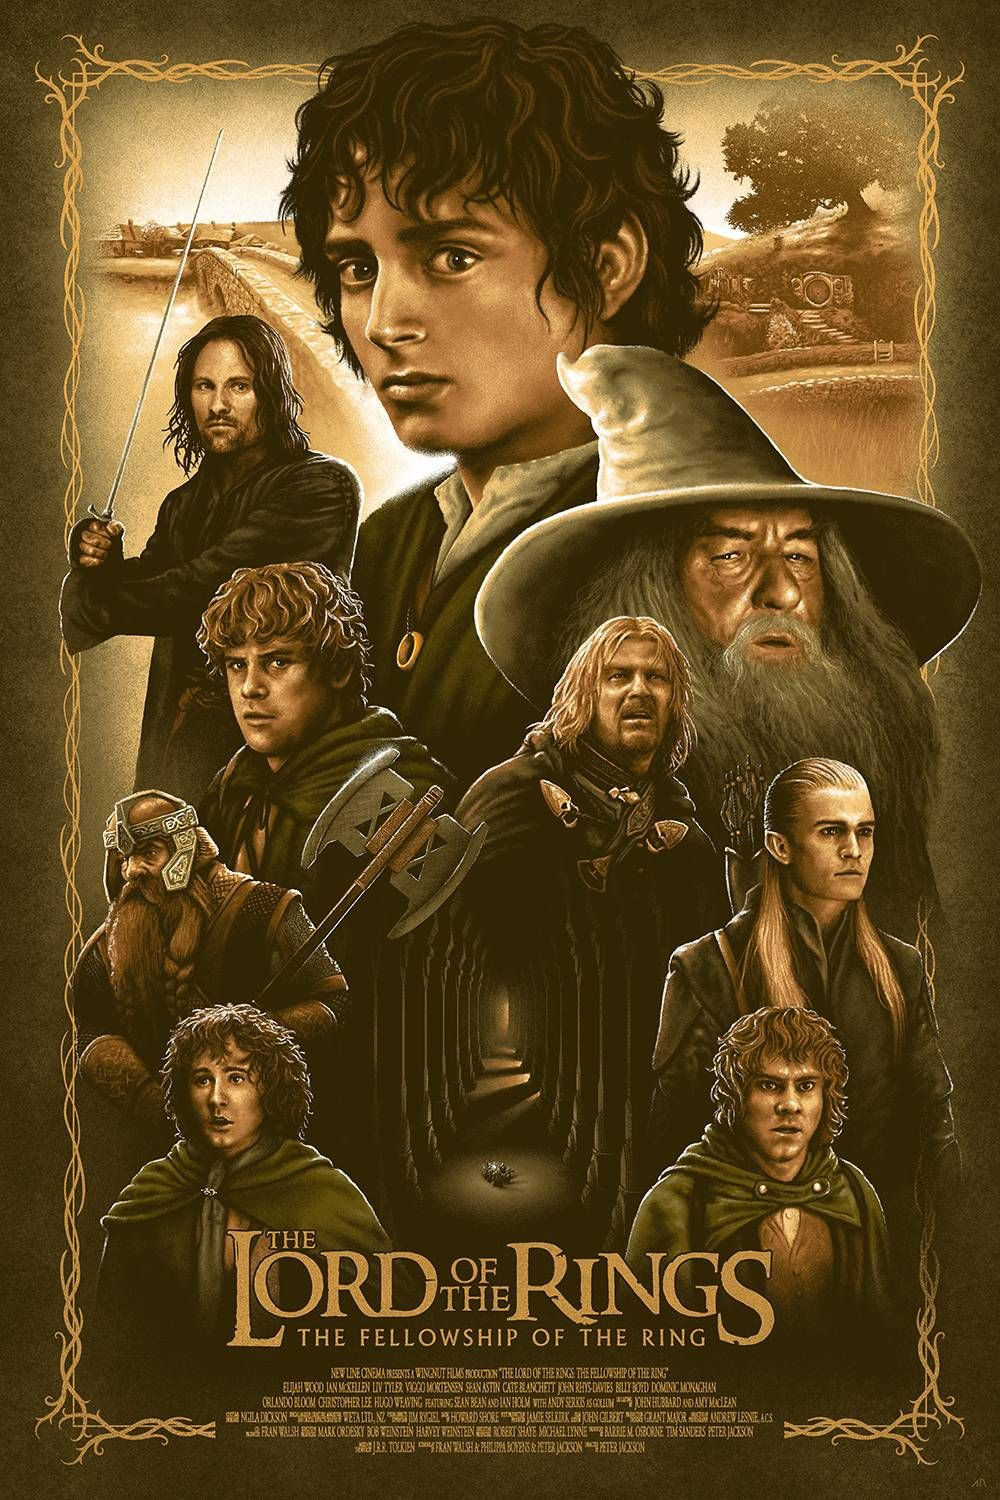 The Lord Of The Rings The Fellowship Of The Ring Personnage Seigneur Des Anneaux Seigneur Des Anneaux Hobbit